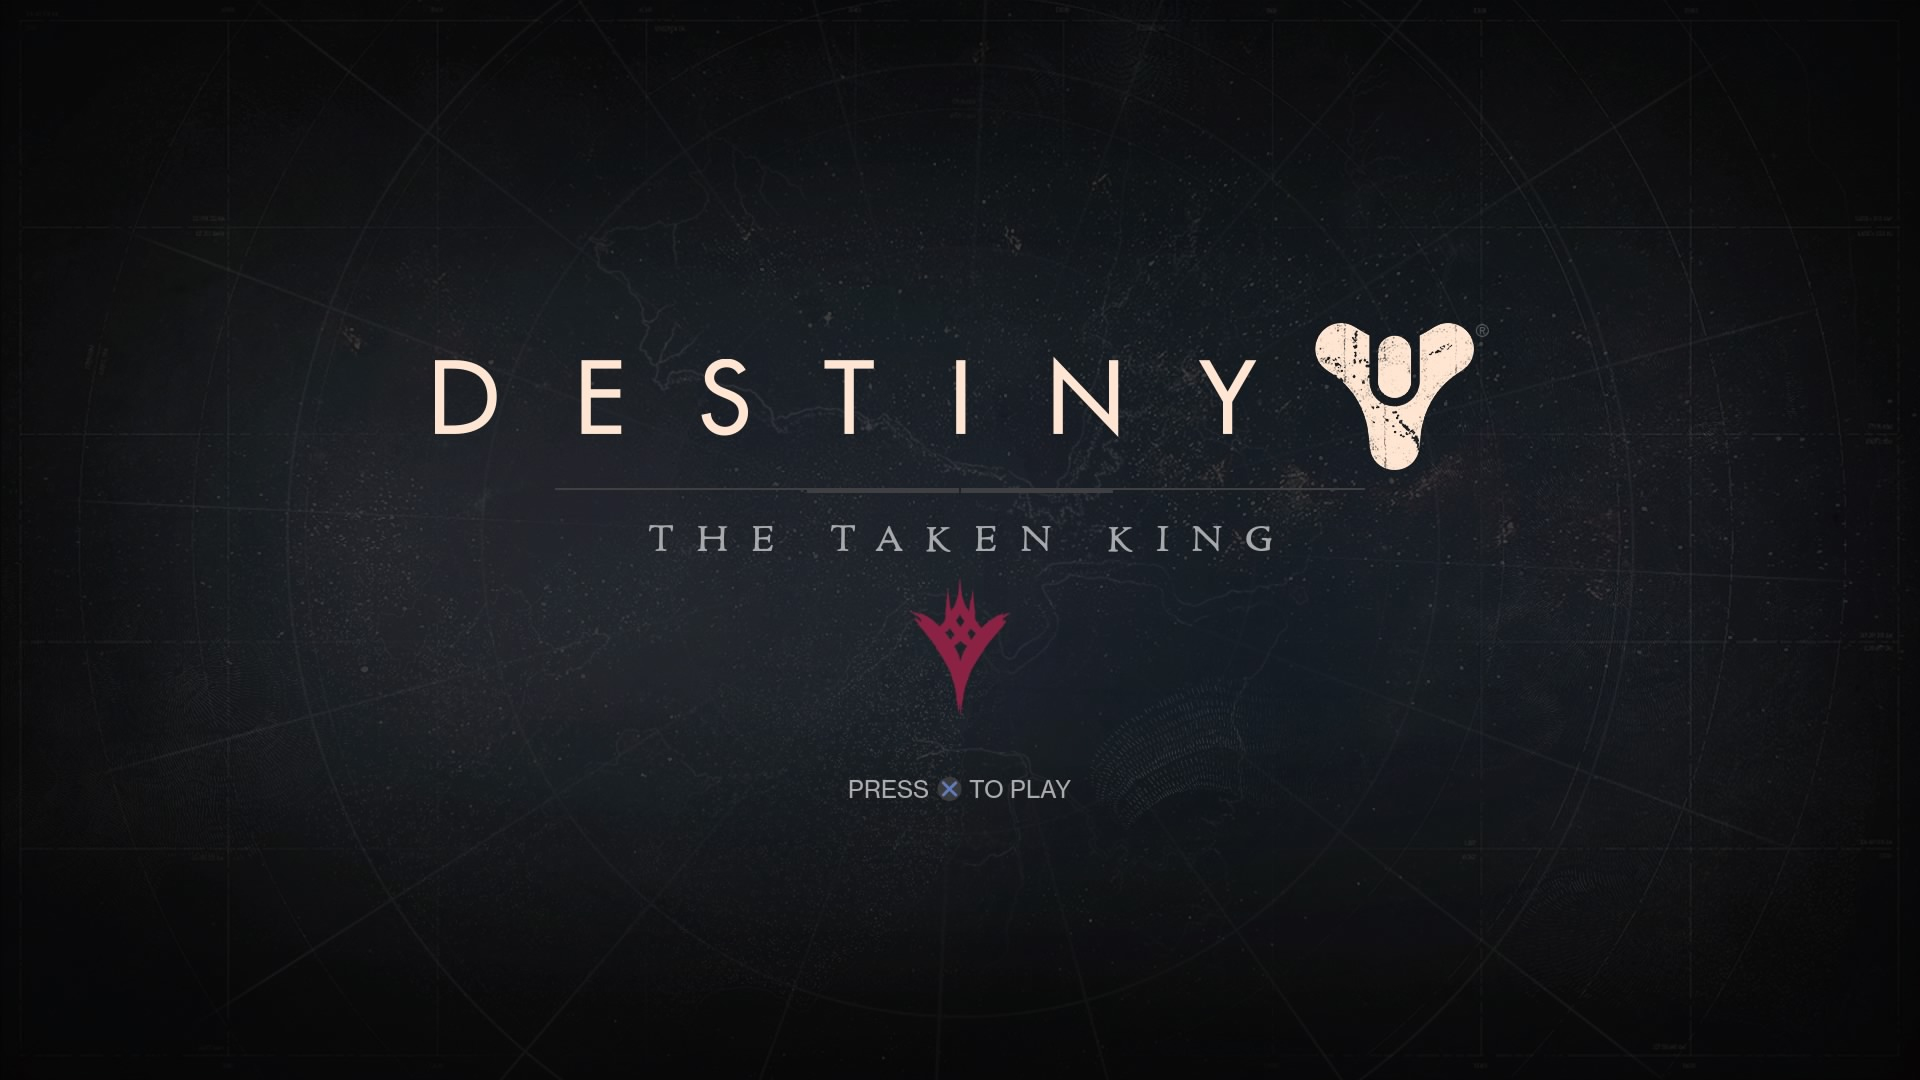 'The Taken King': Finally, 'Destiny' Has Been Released